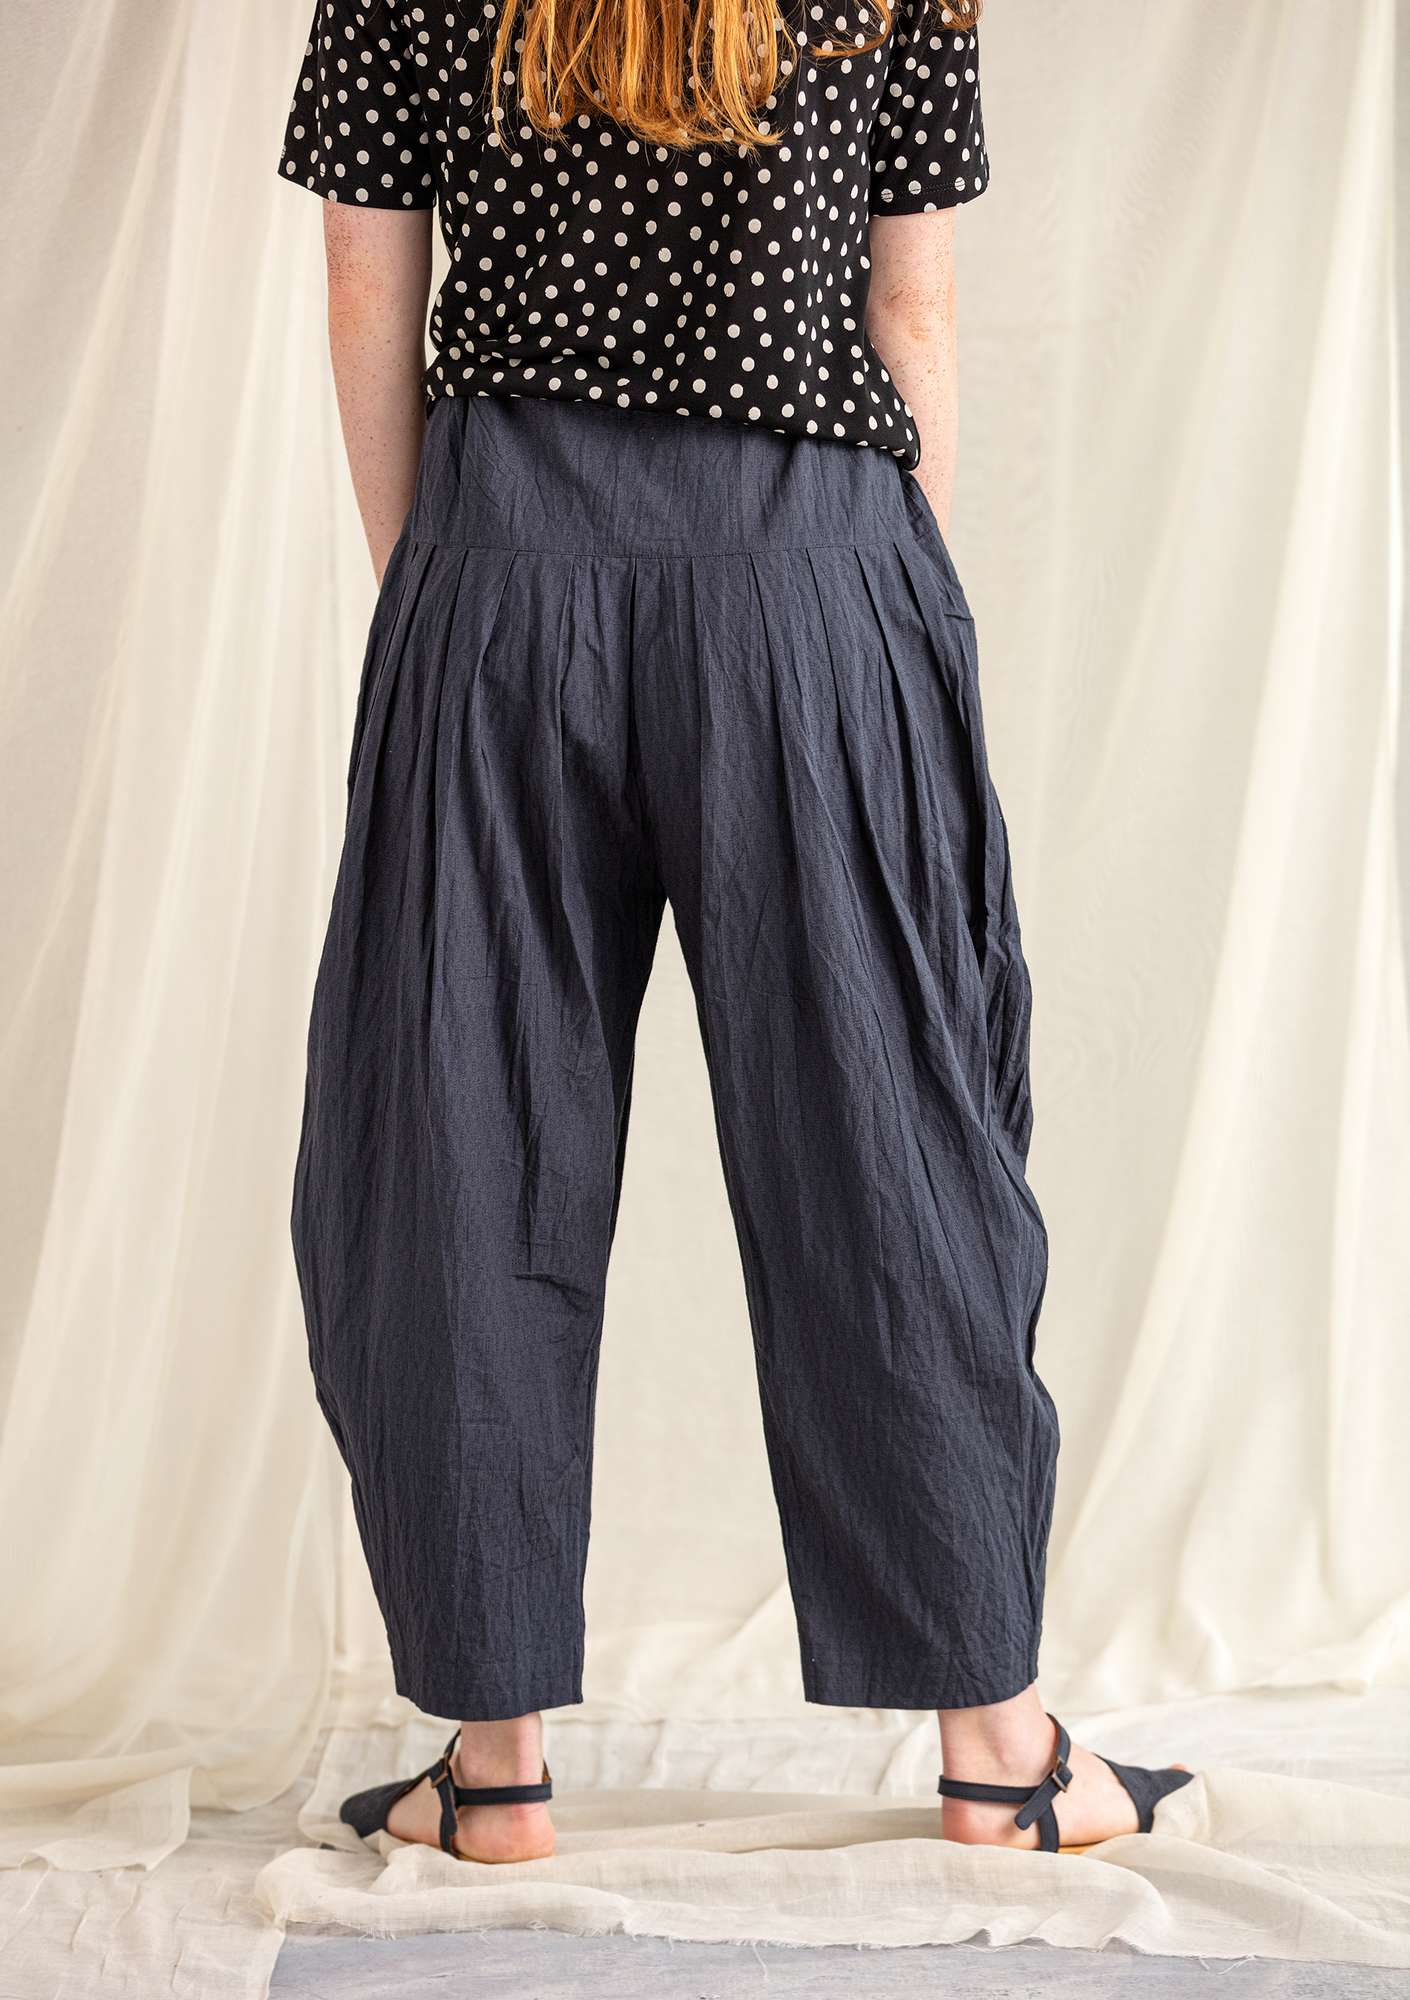 Trousers in organic cotton/linen ink blue